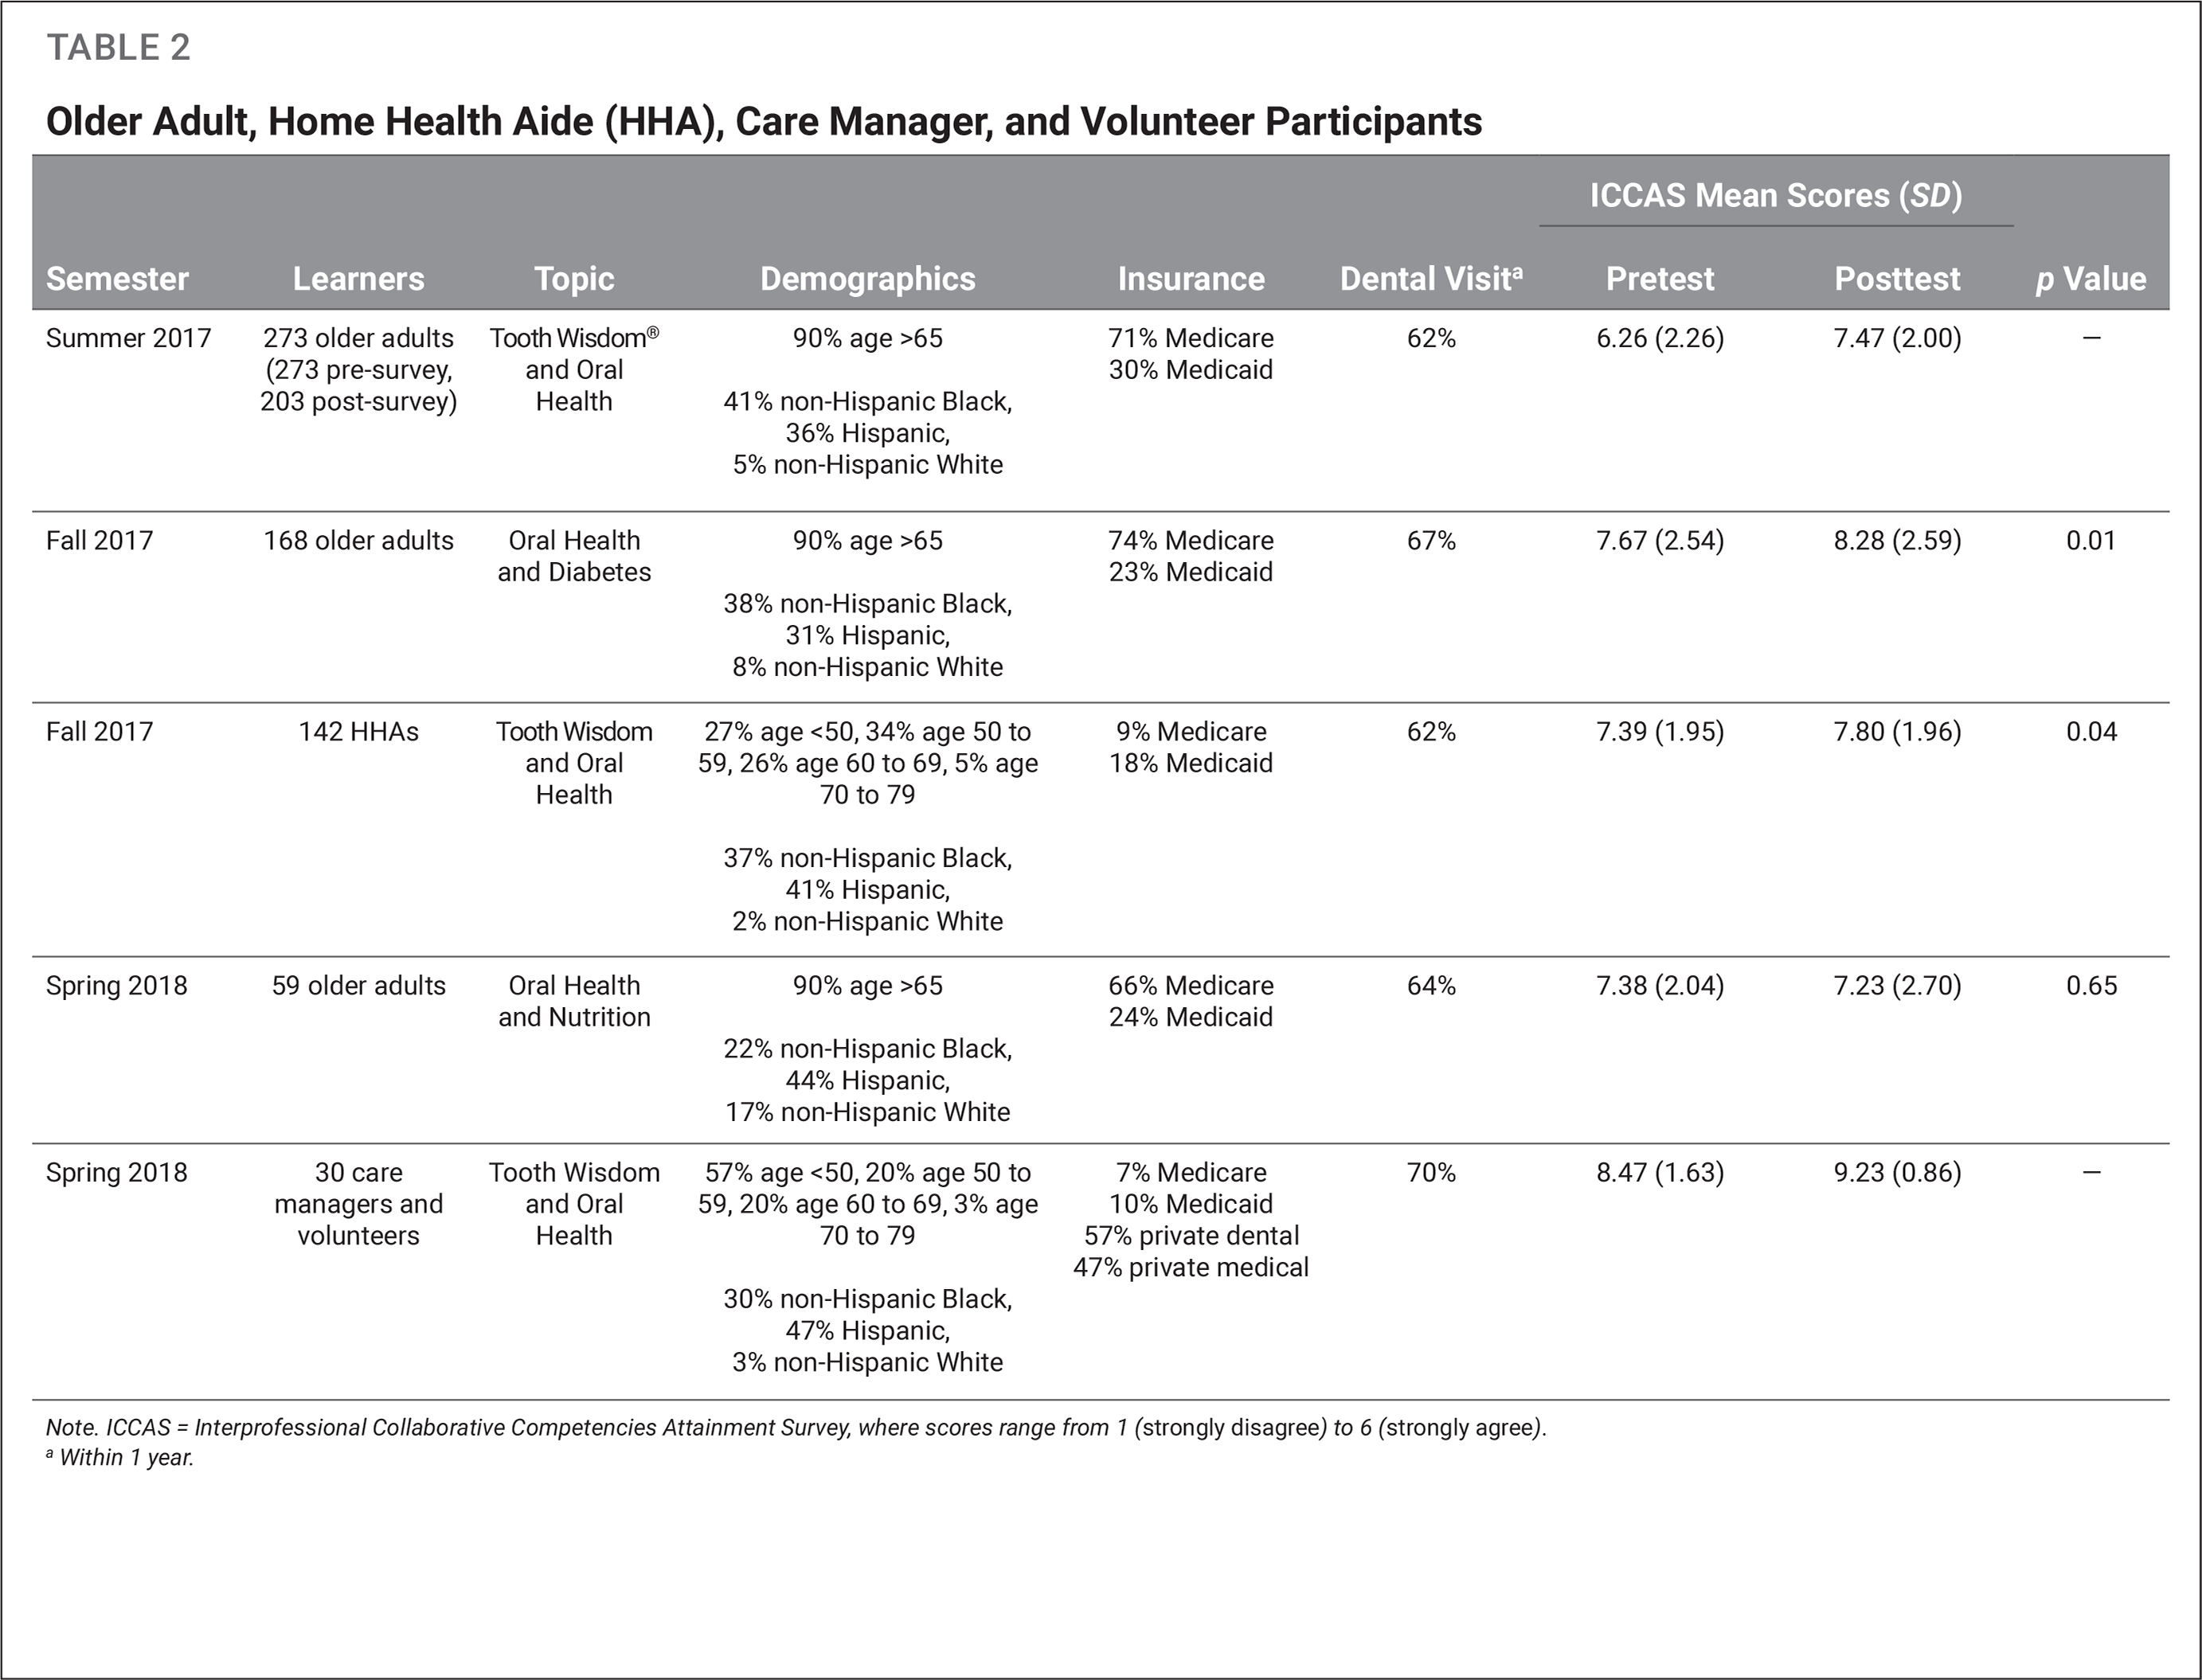 Older Adult, Home Health Aide (HHA), Care Manager, and Volunteer Participants